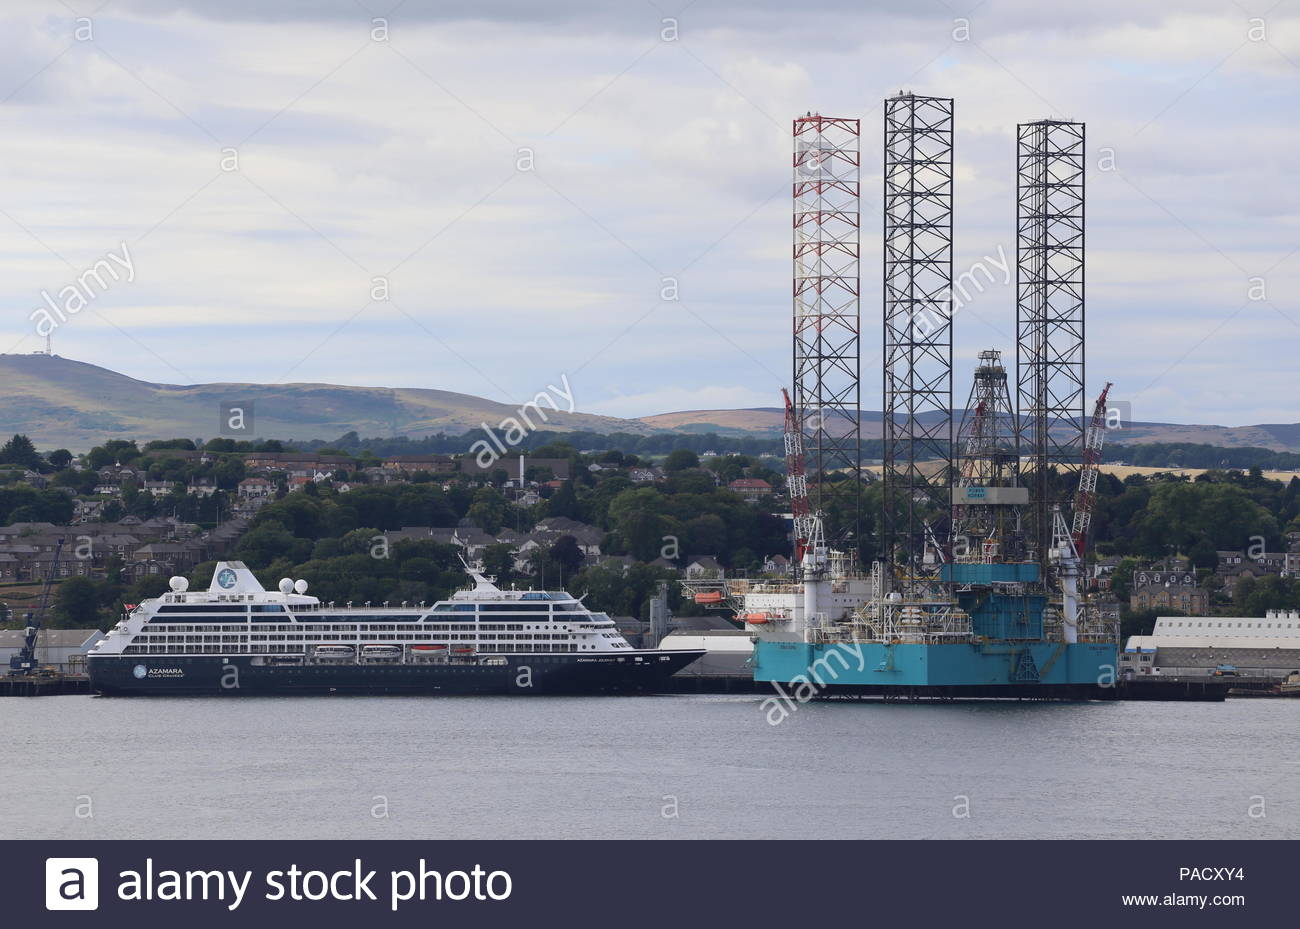 Dundee, UK. 21st July 2018. Cruise ship Azamara Journey and oil rig Rowan Norway at Port of Dundee on warm but overcast day.  © Stephen Finn/Alamy Live News Stock Photo